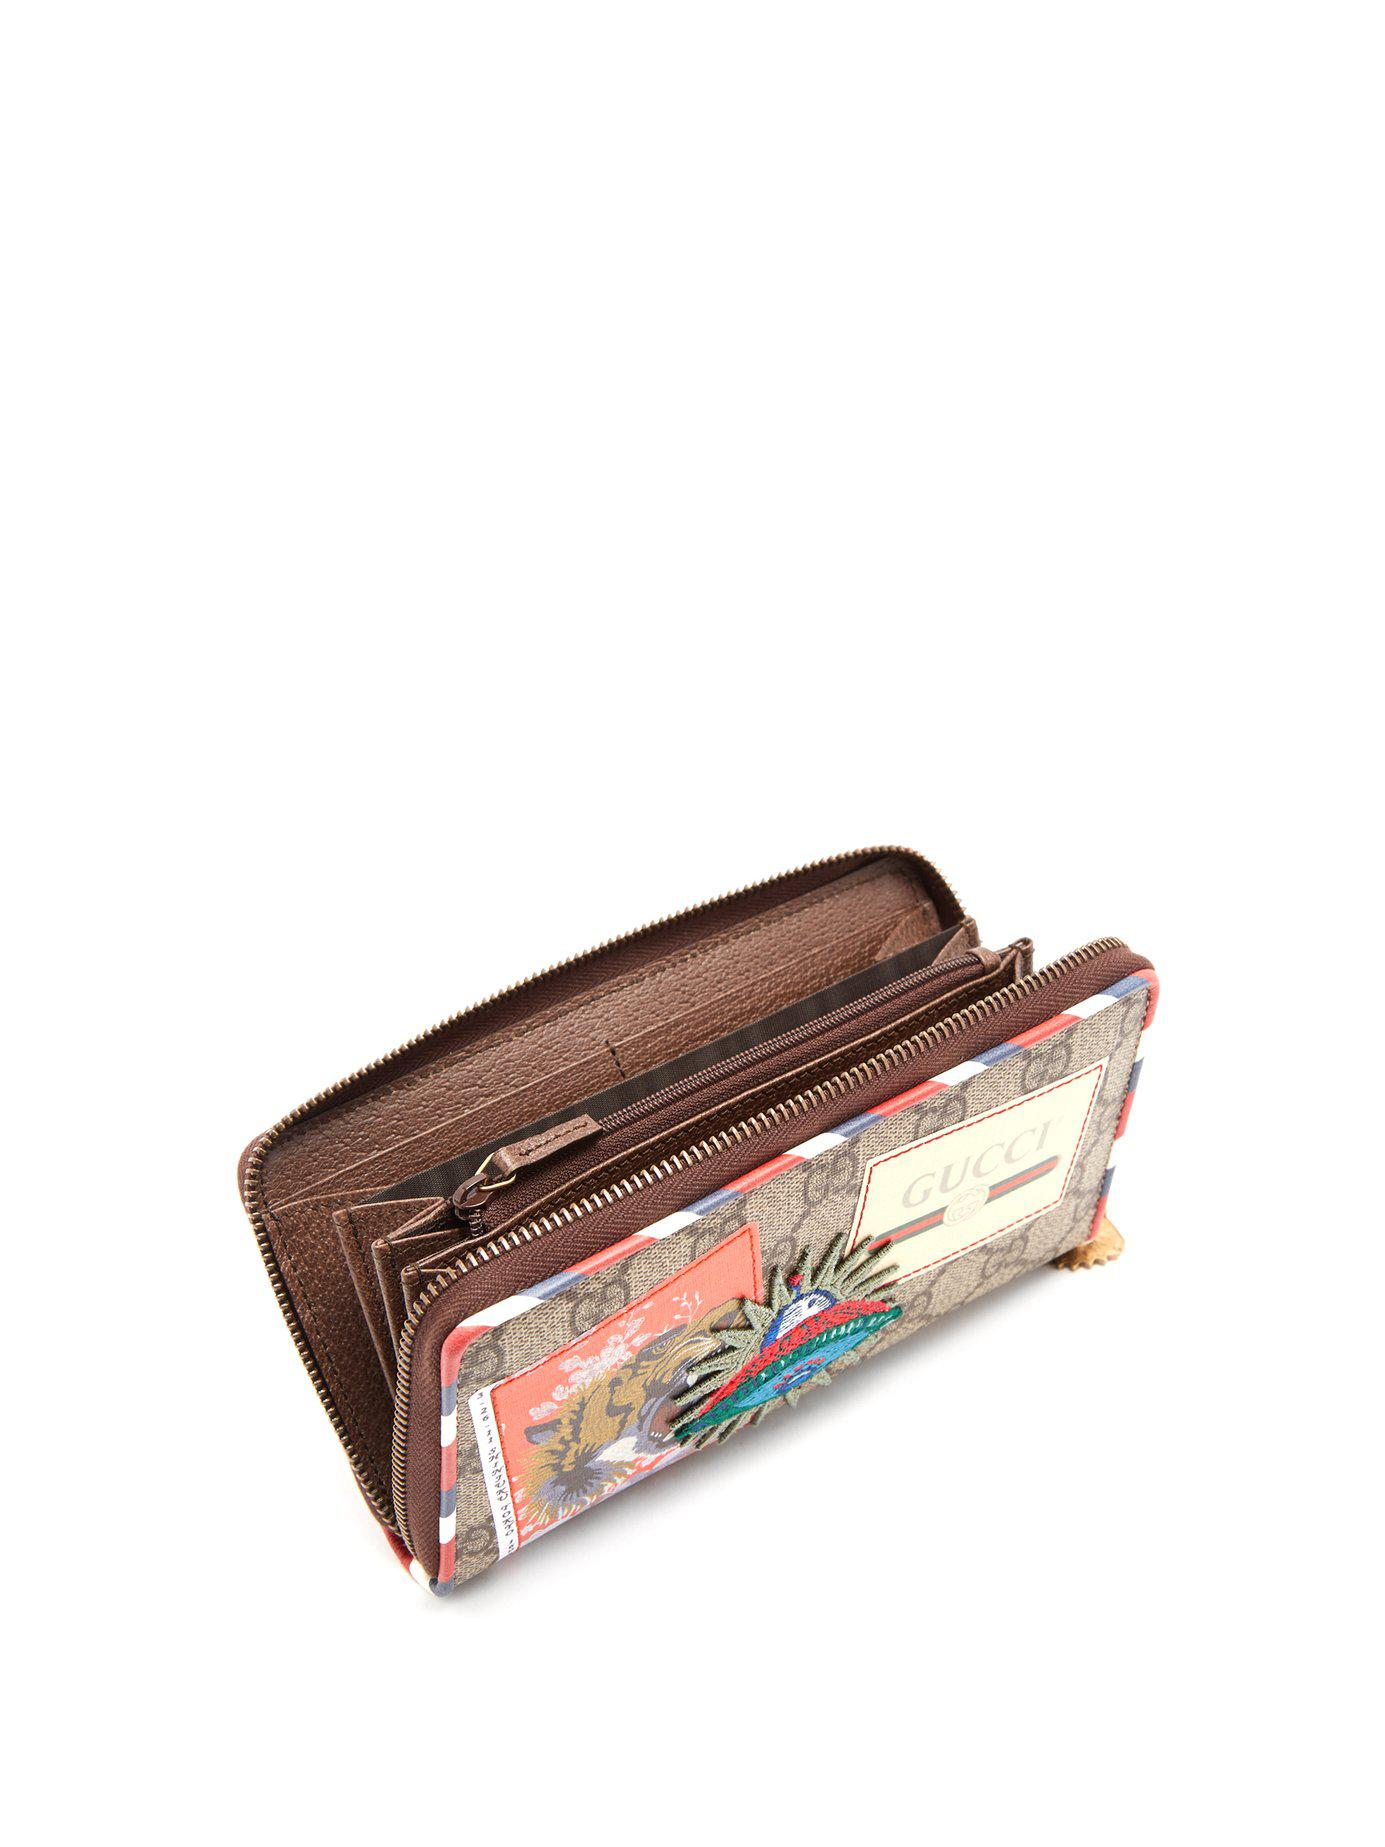 7769c175e19d Gucci Courrier Gg Supreme Zip-around Wallet in Brown for Men - Save 5% -  Lyst